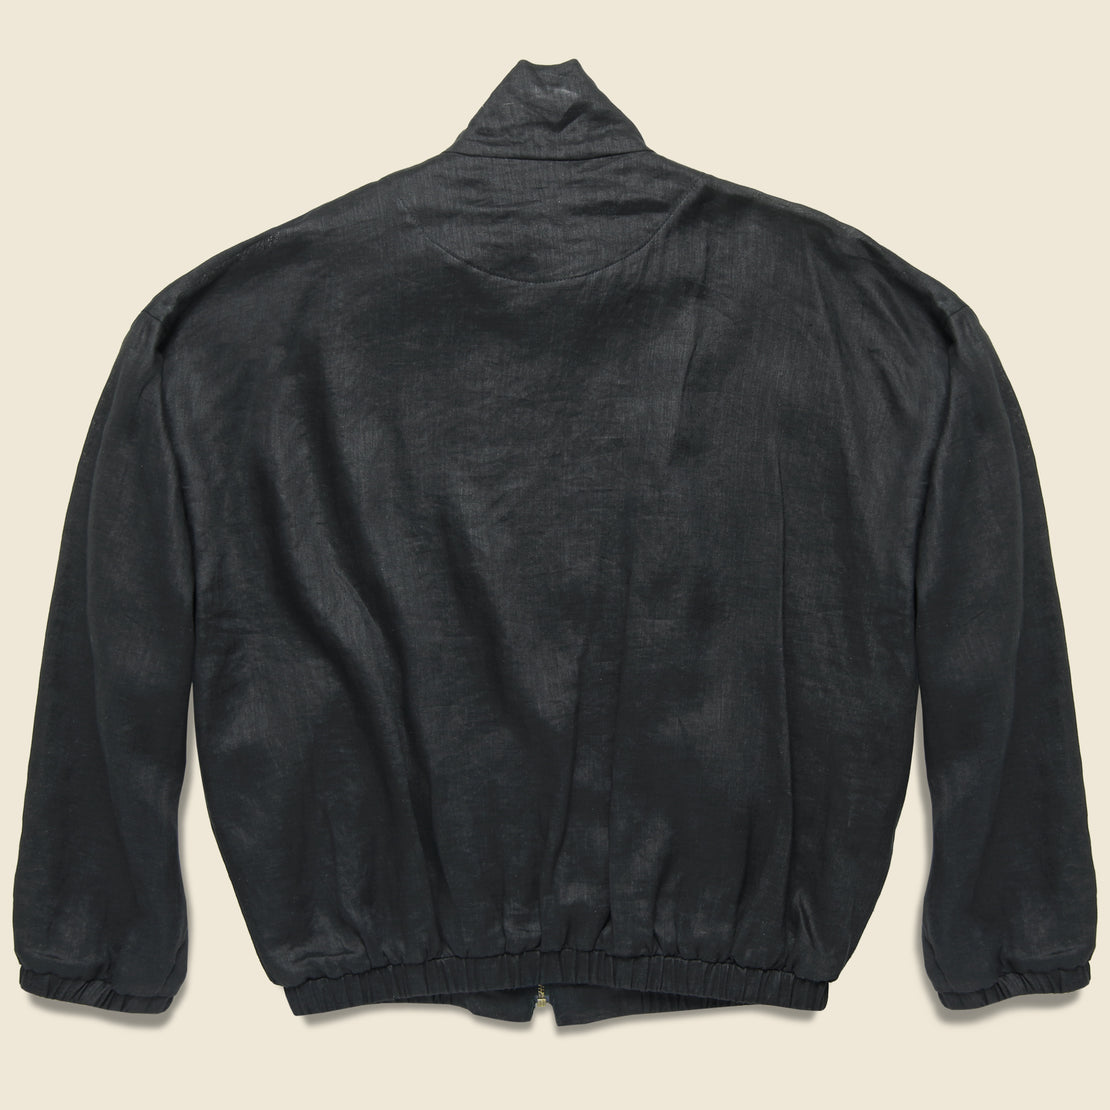 Old Dog Linen Blouson Jacket - Black